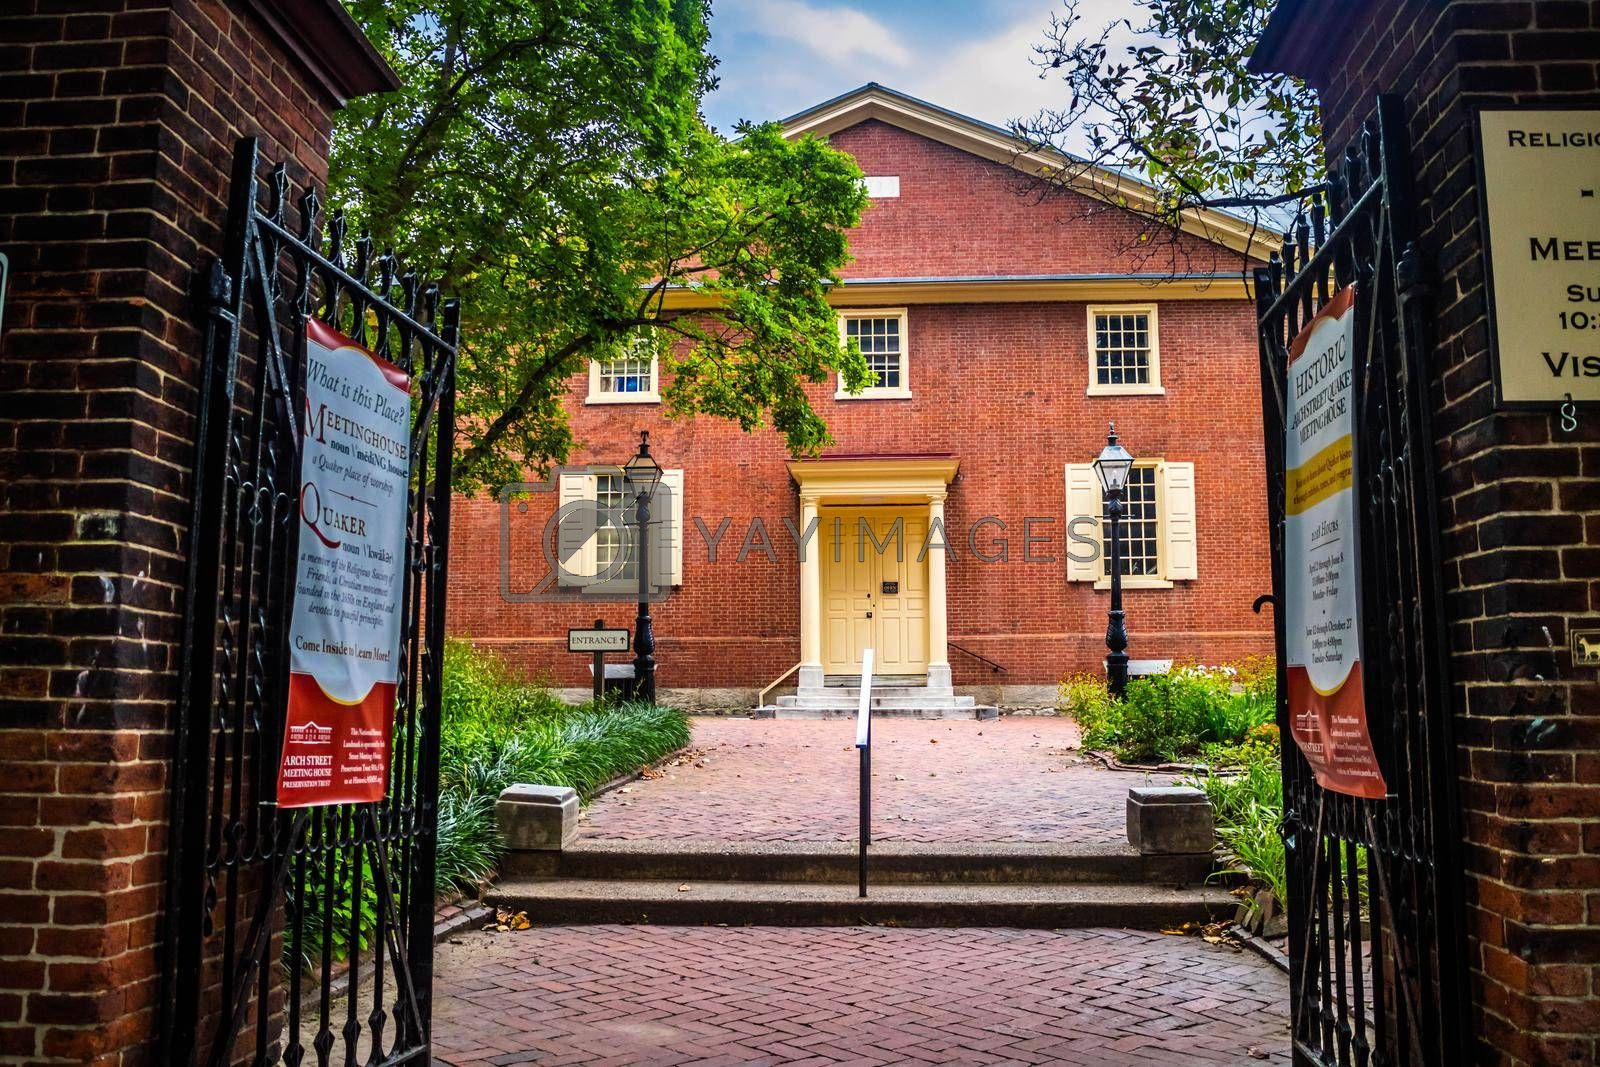 Royalty free image of Pennsylvania, PA, USA - Sept 22, 2018: The Arch Street Meeting House by cherialguire